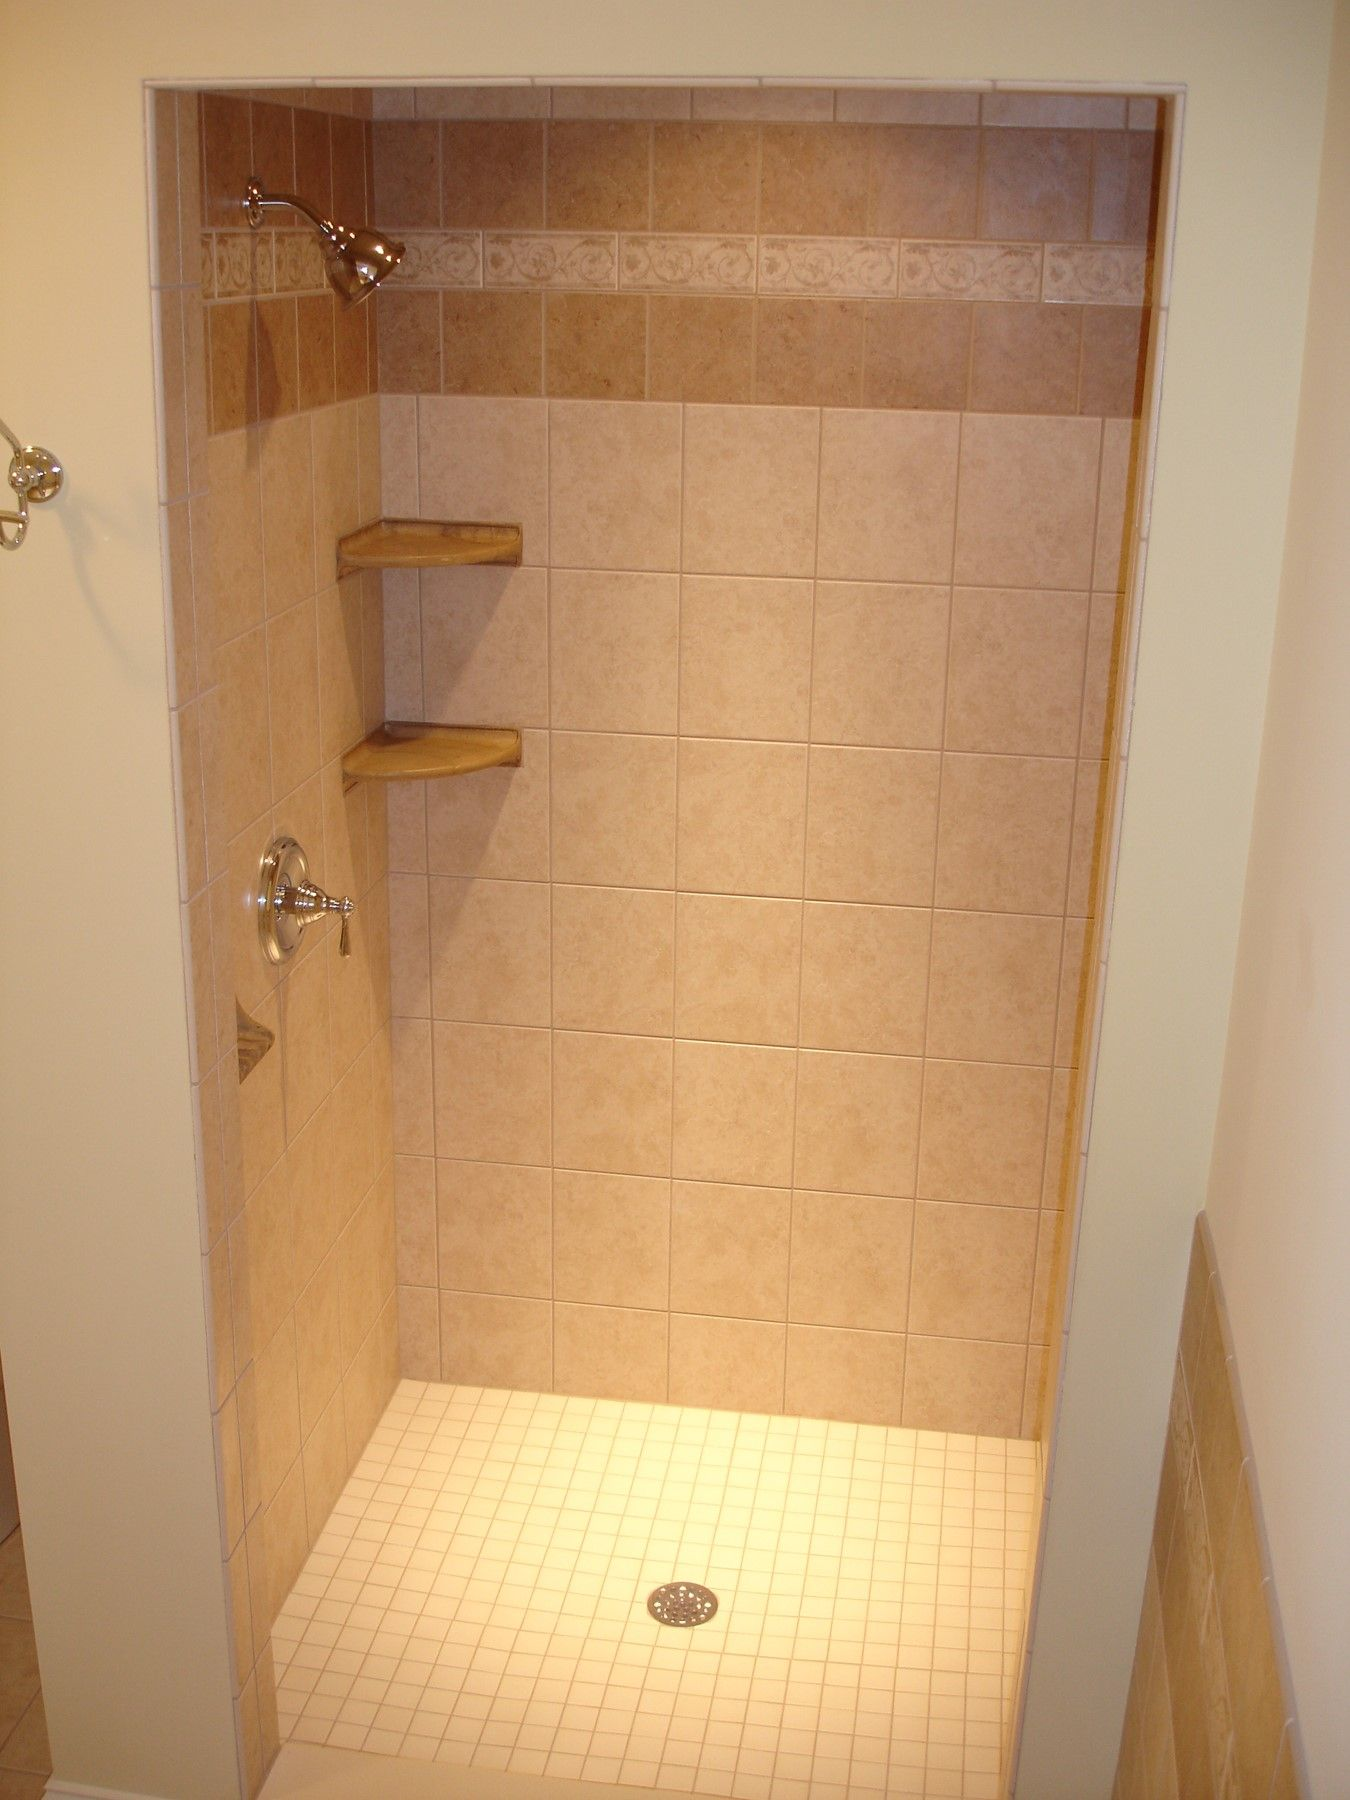 Stand Up Shower Ideas tile stand up shower http://hoffmanscc/ | kitchen's & baths